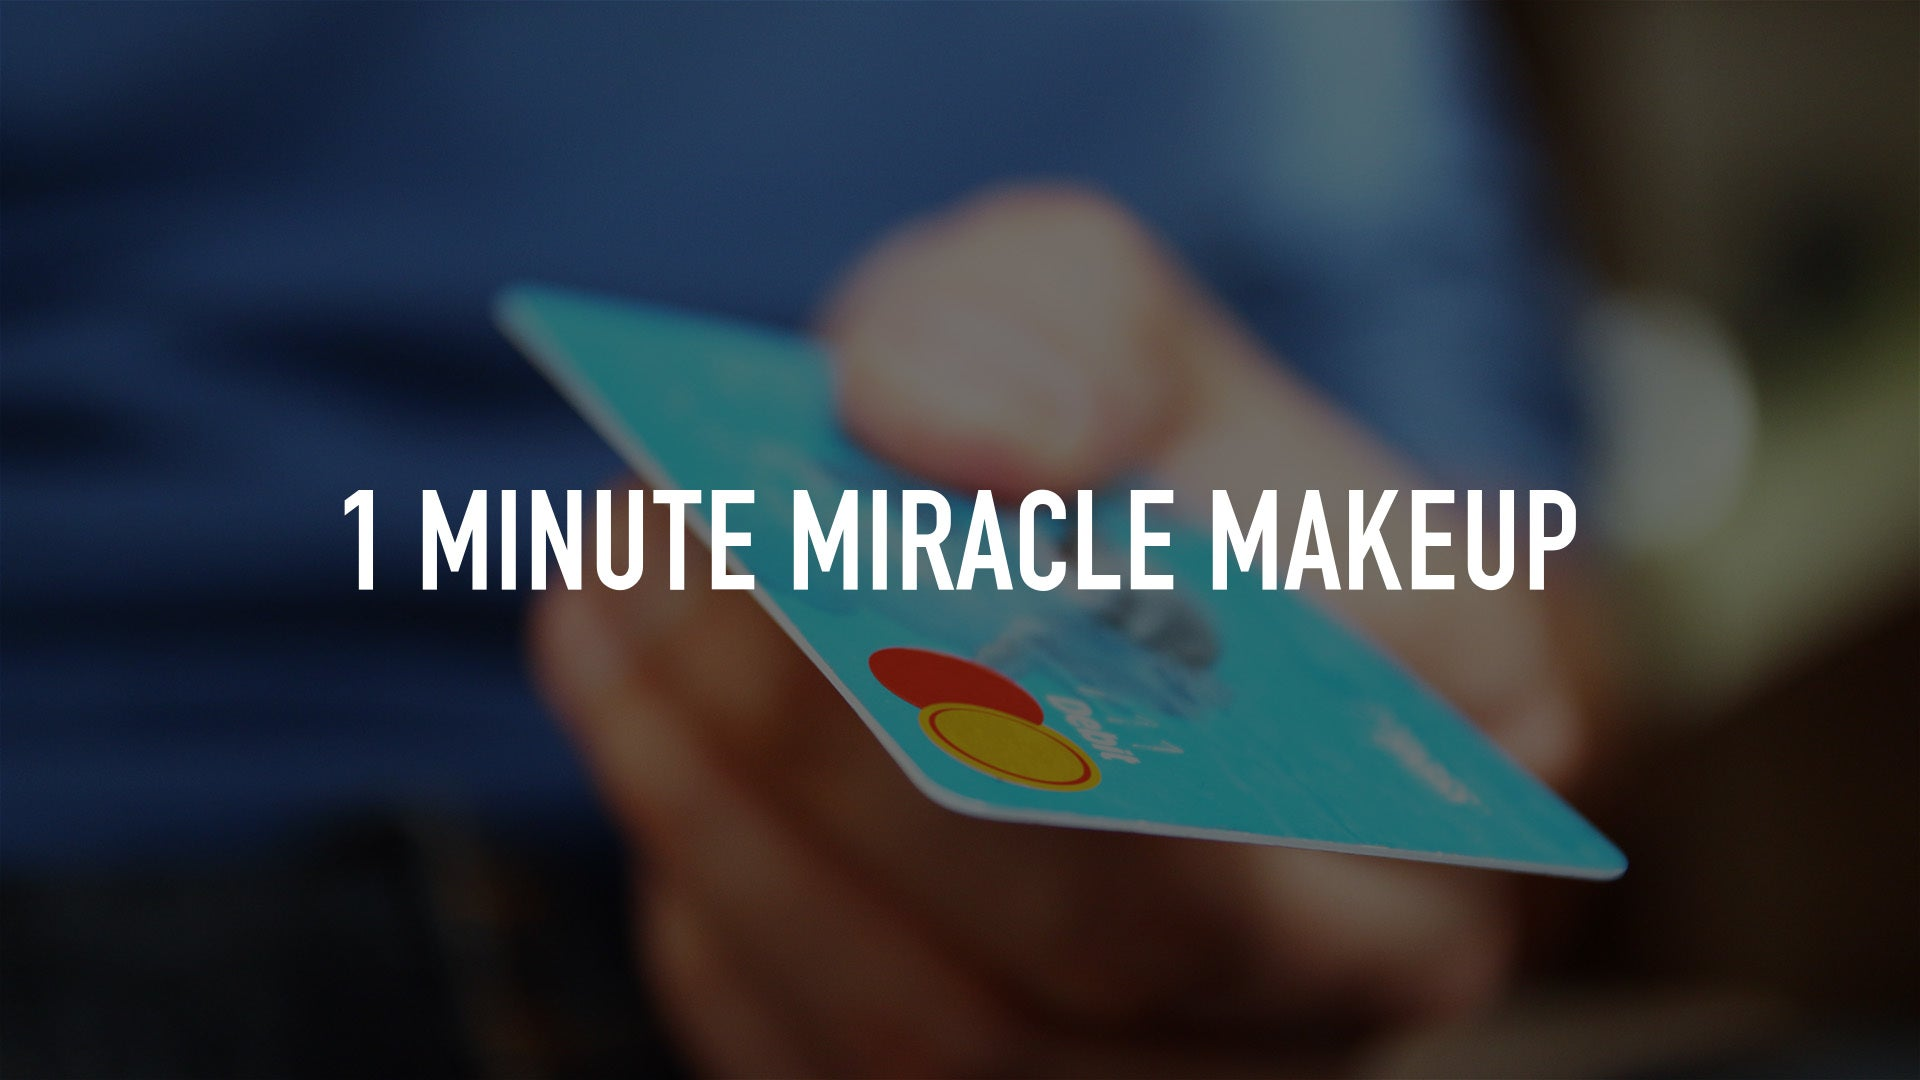 1 Minute Miracle Makeup